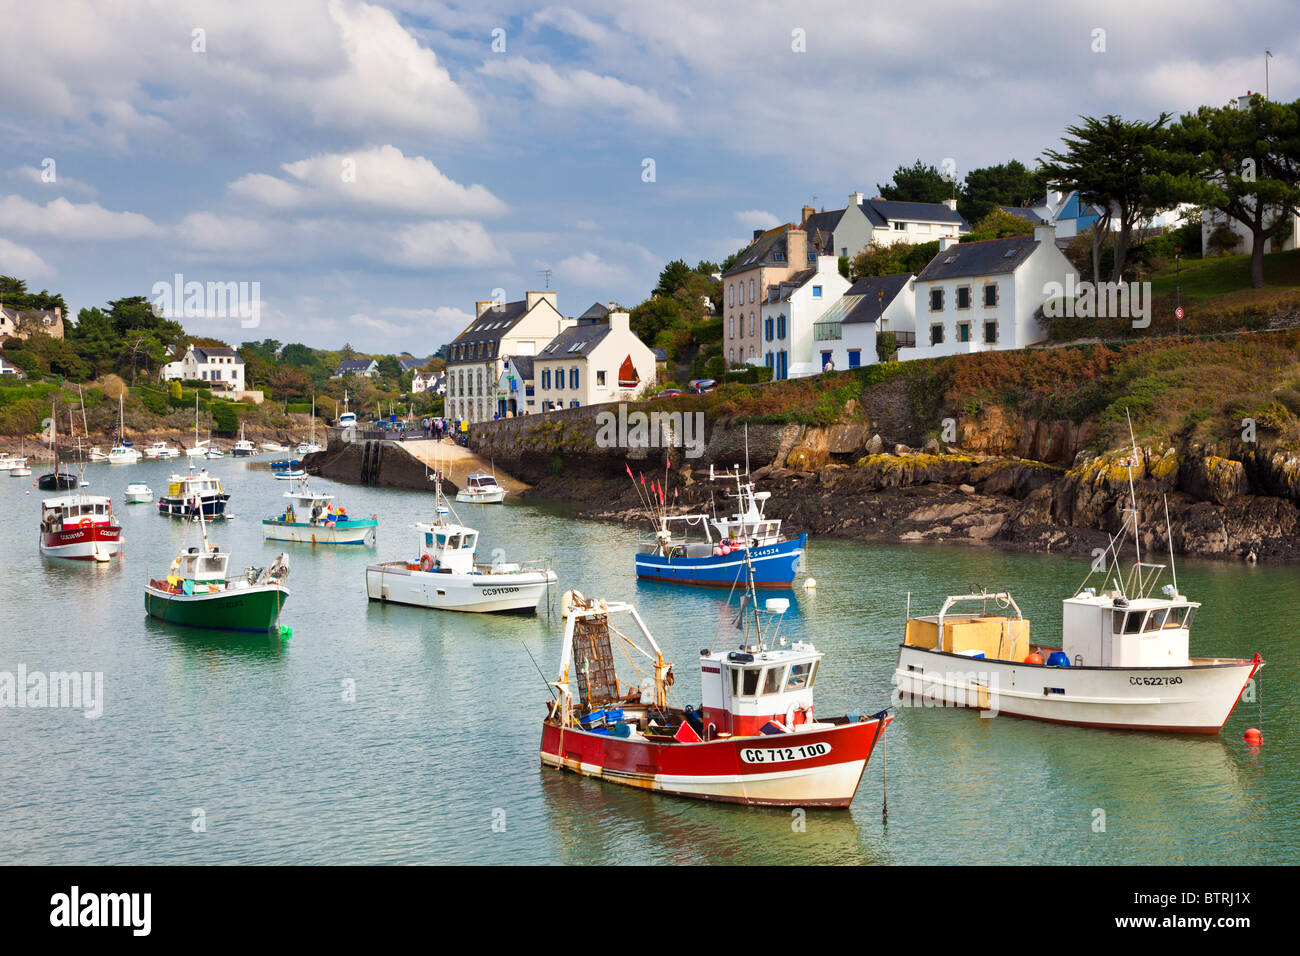 Small fishing boats in the harbour at Doelan village, Finistere, Brittany, France, Europe - Stock Image